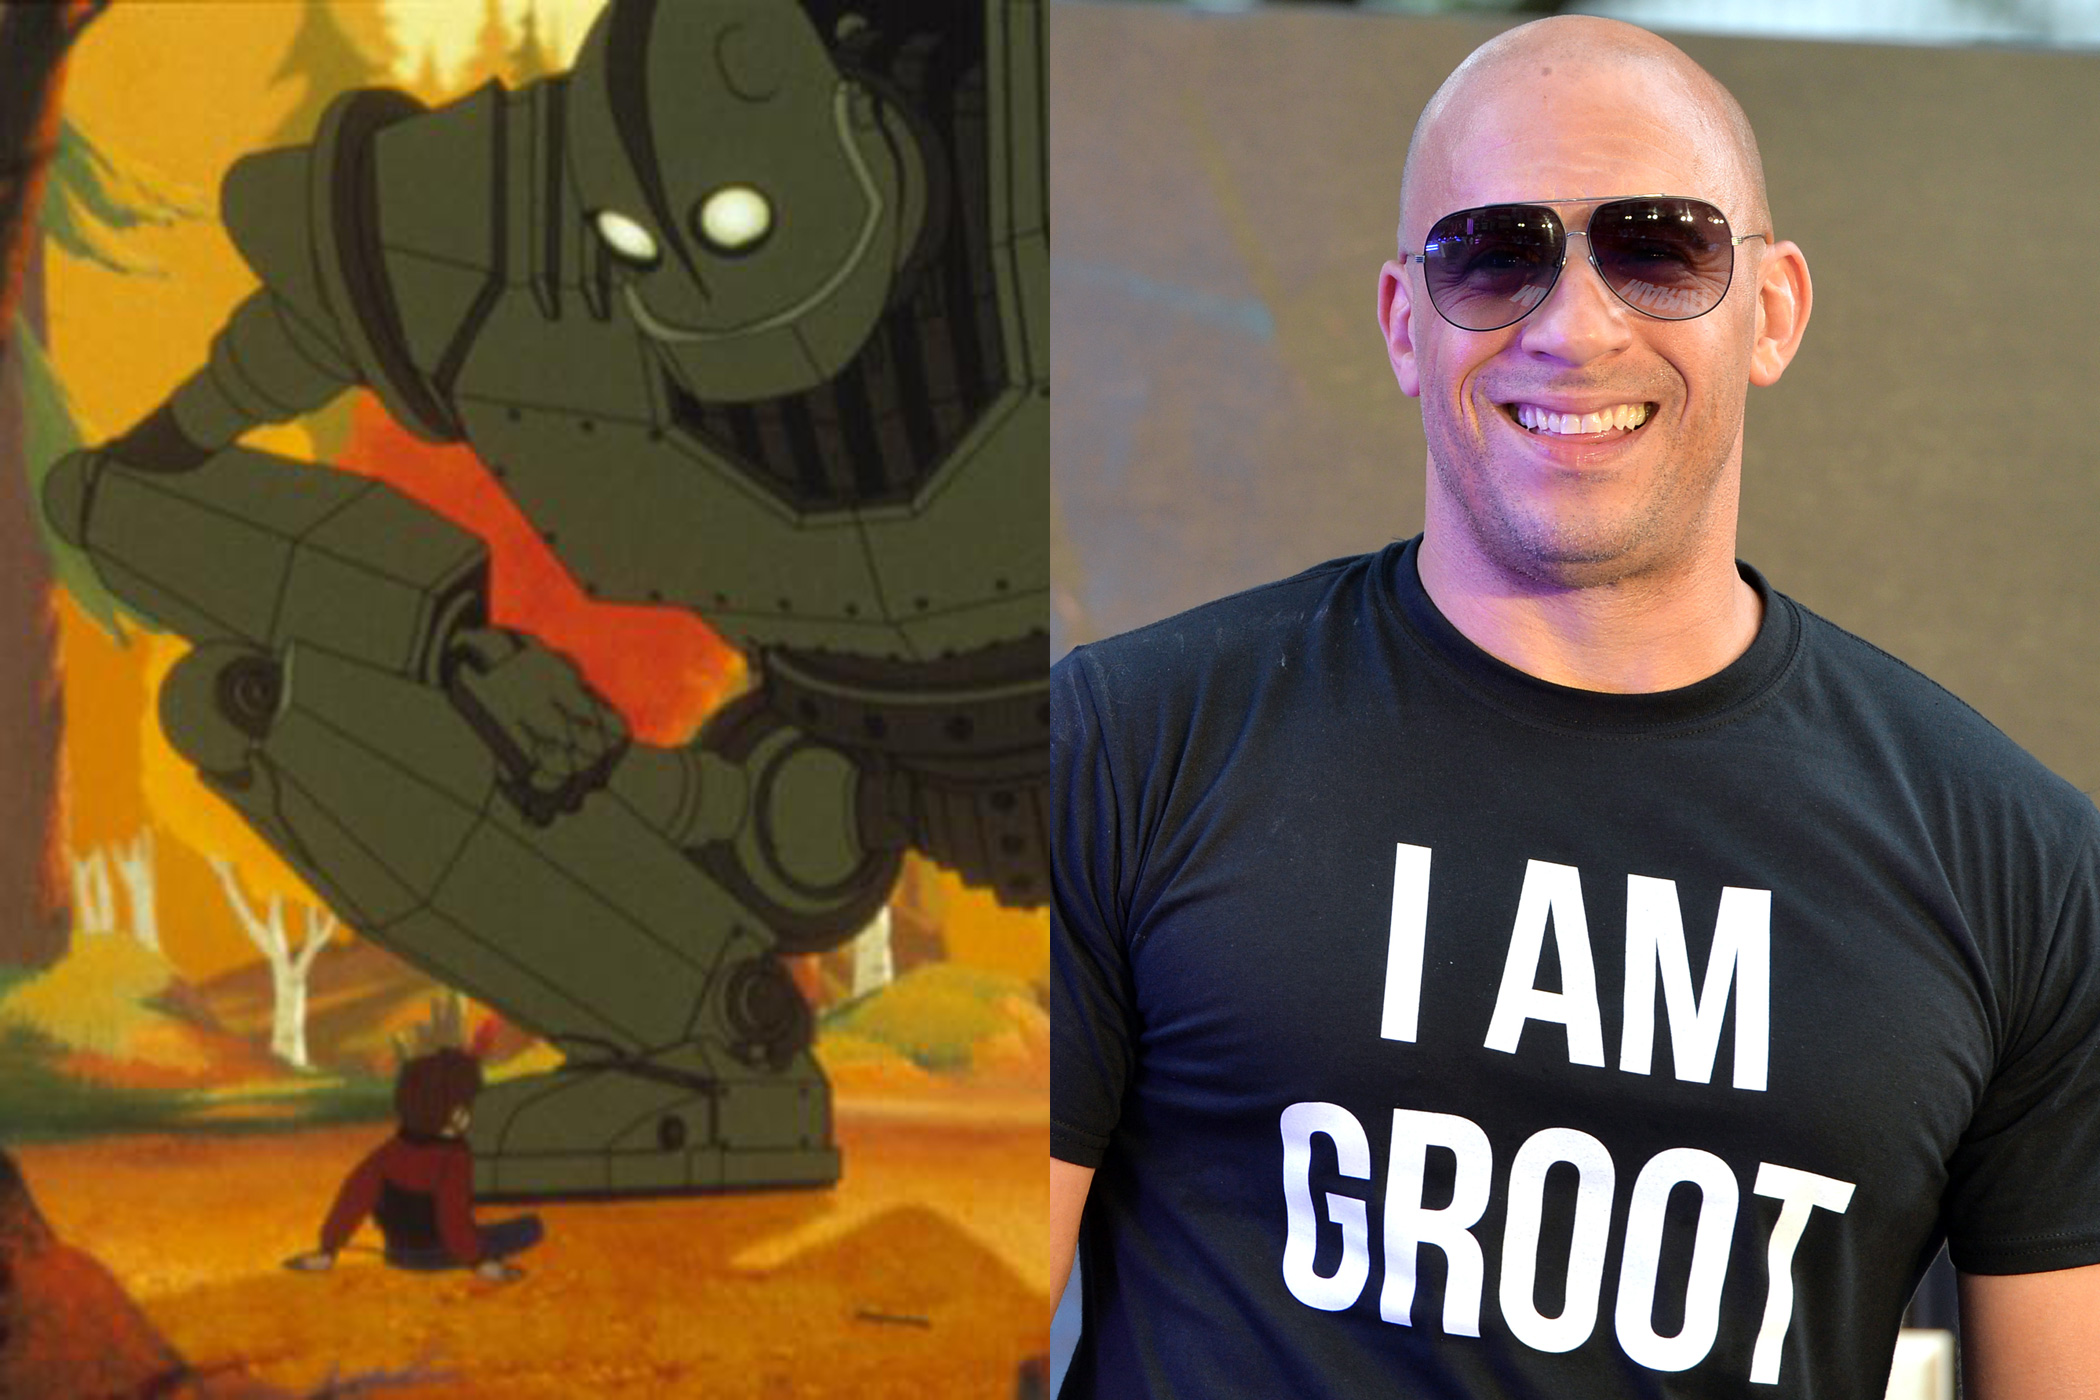 Vin Diesel's voice acting career consists of more than three words. In 1999, he was the voice of The Iron Giant in its eponymous movie.